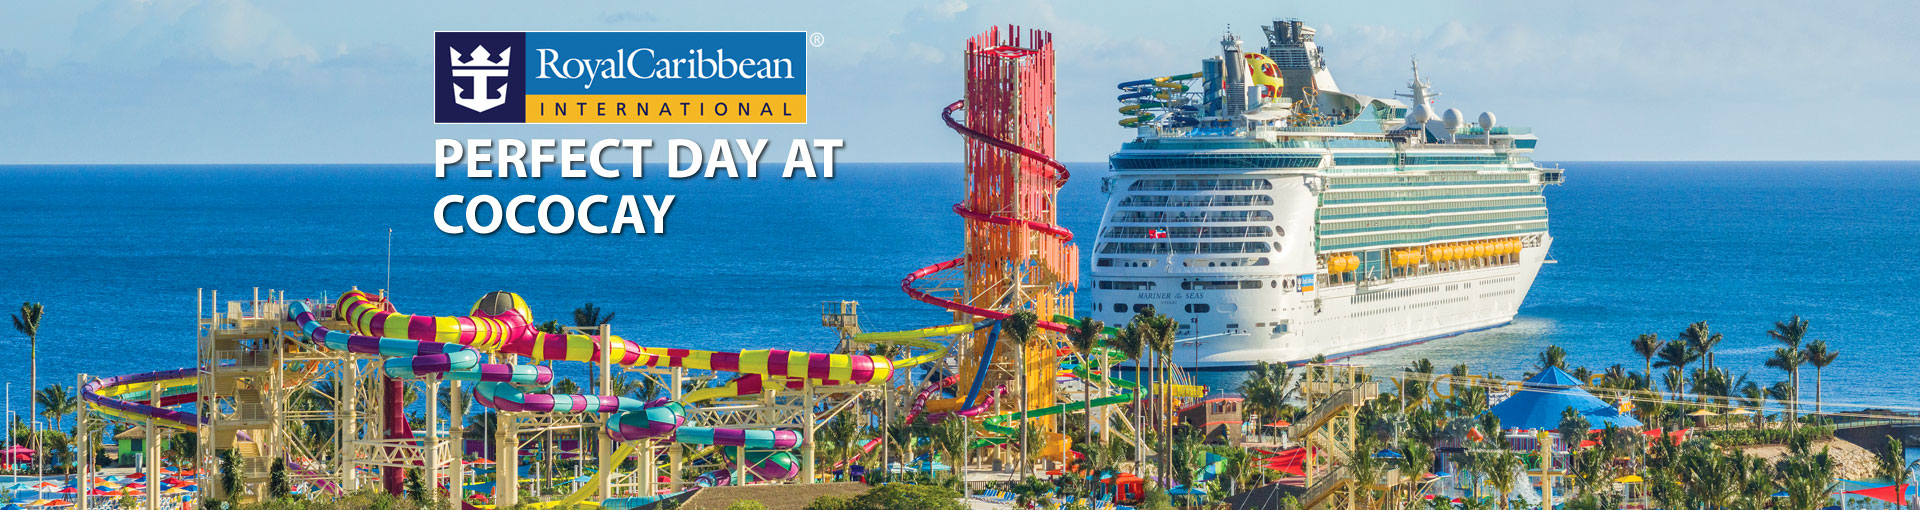 Royal Caribbean's Perfect Day at CocoCay